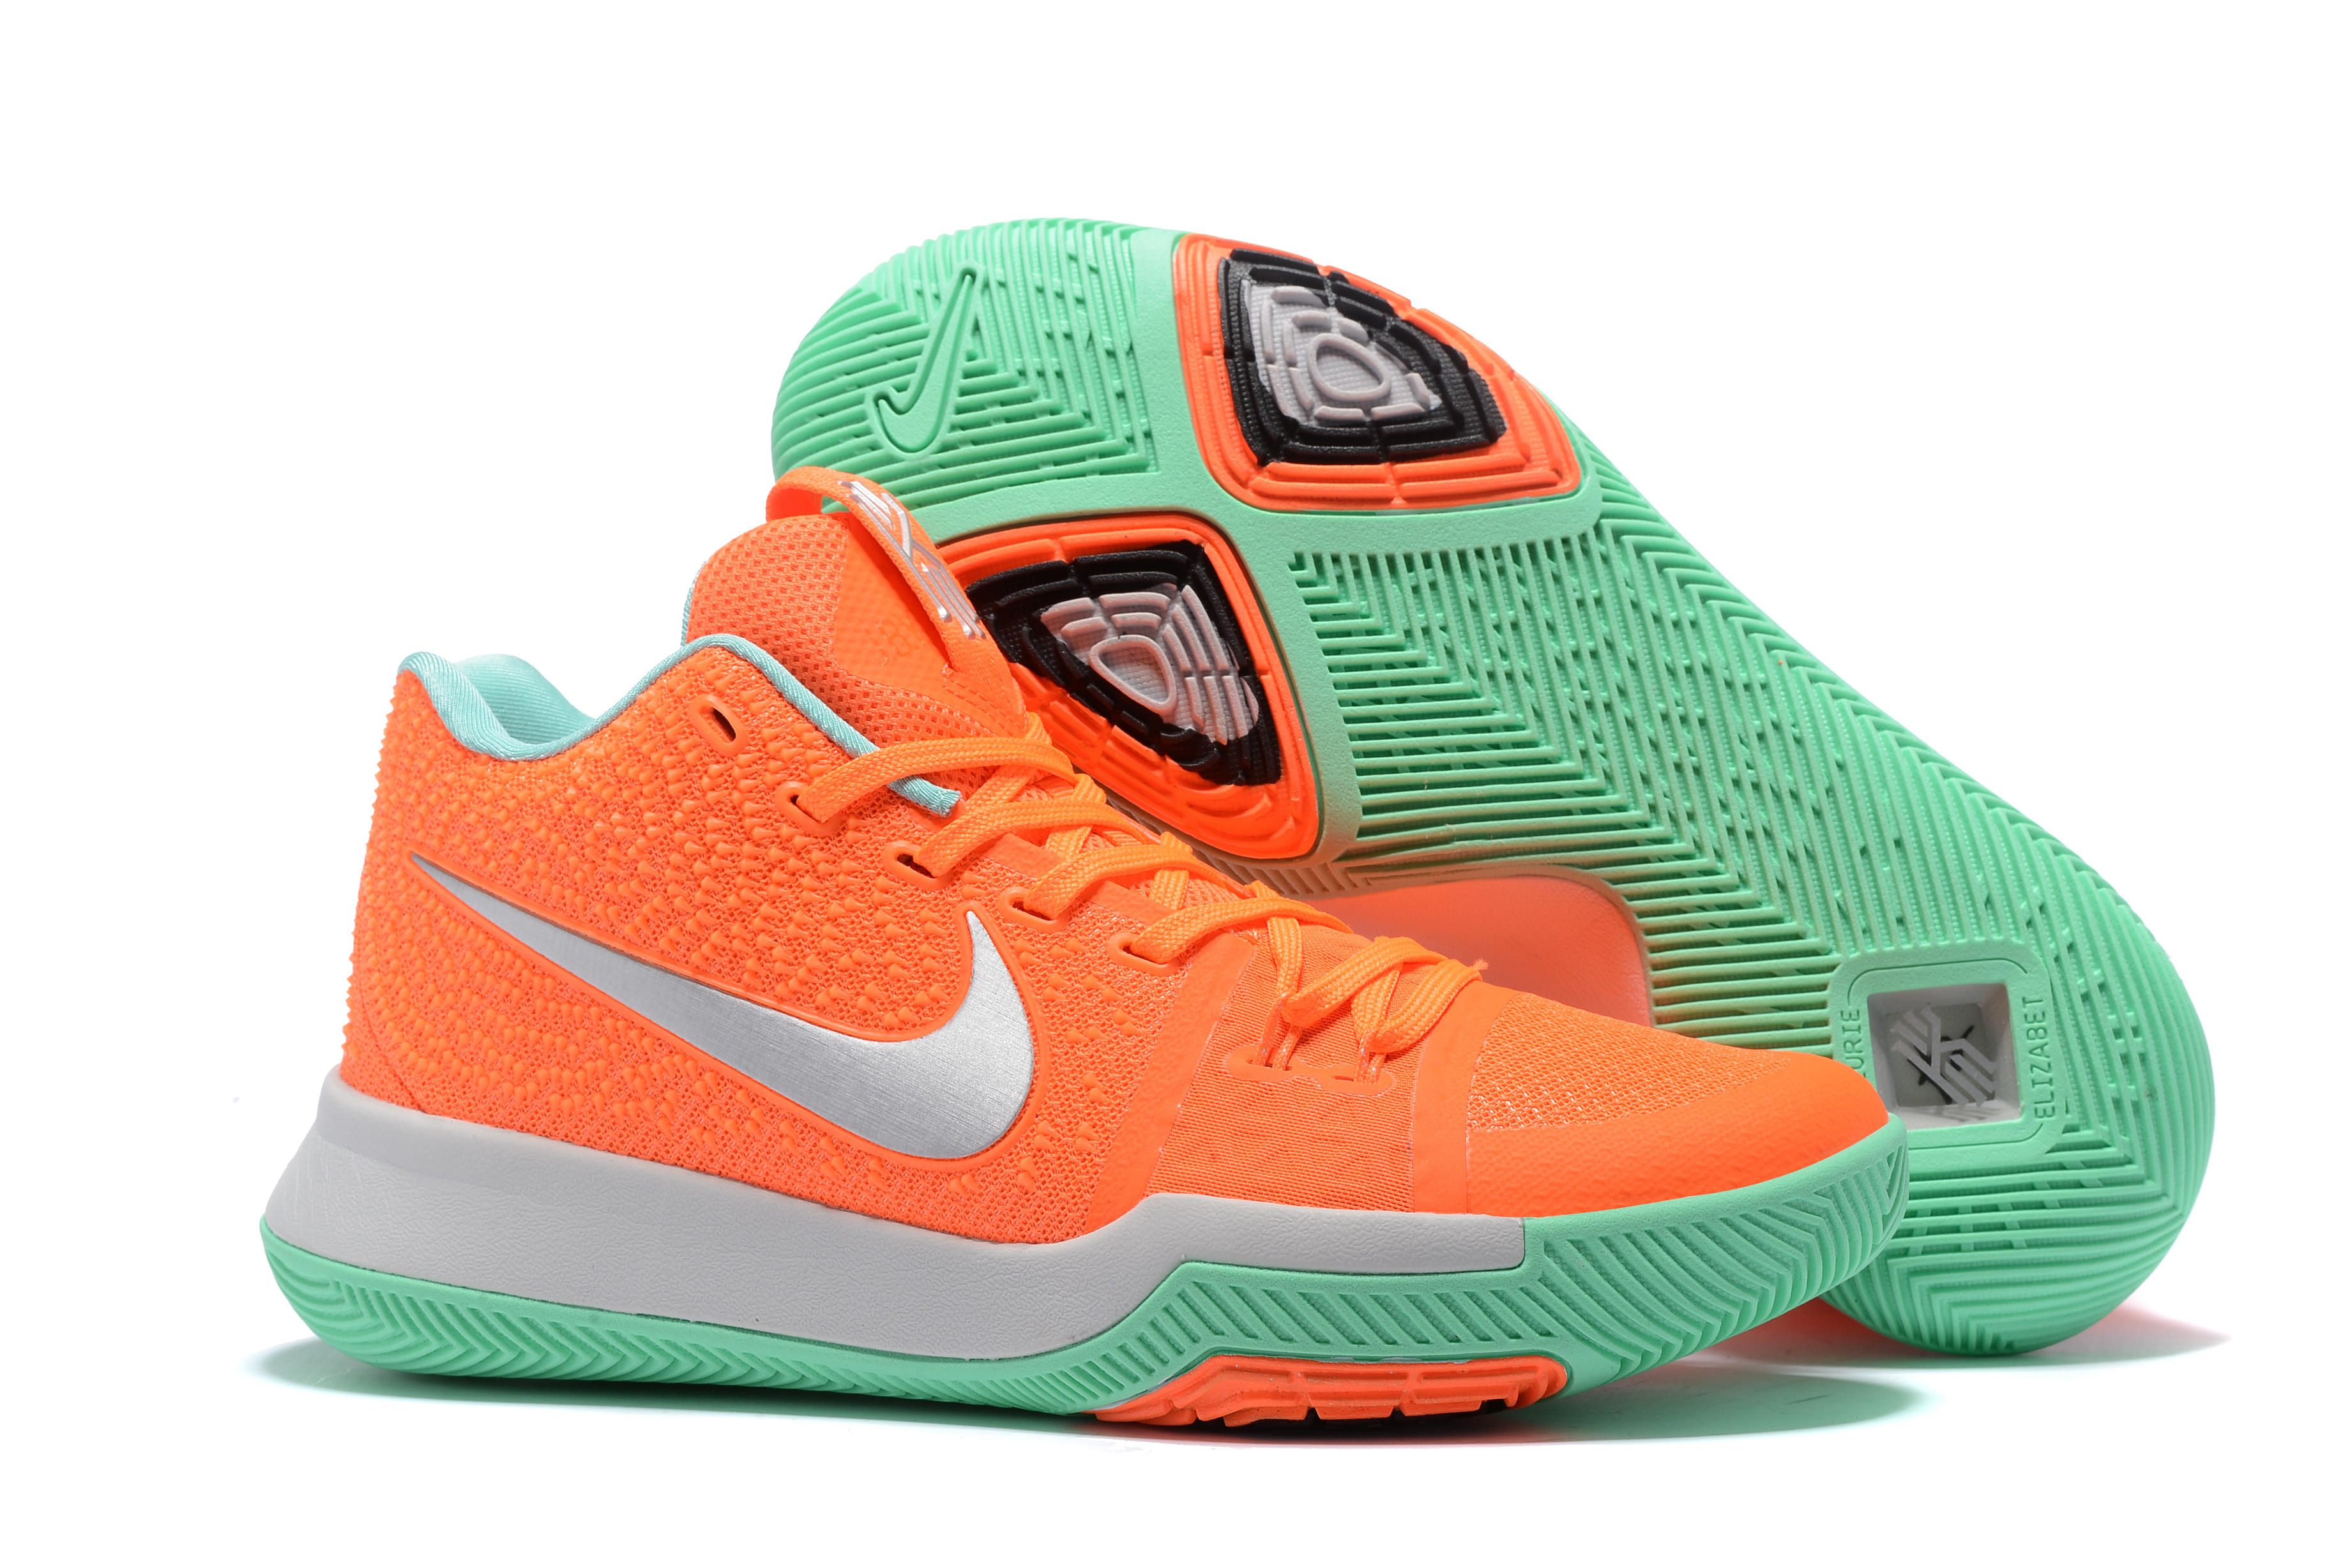 2017 Cheap Kyrie 3 Orange Green Silver Basketball Shoes For Sale